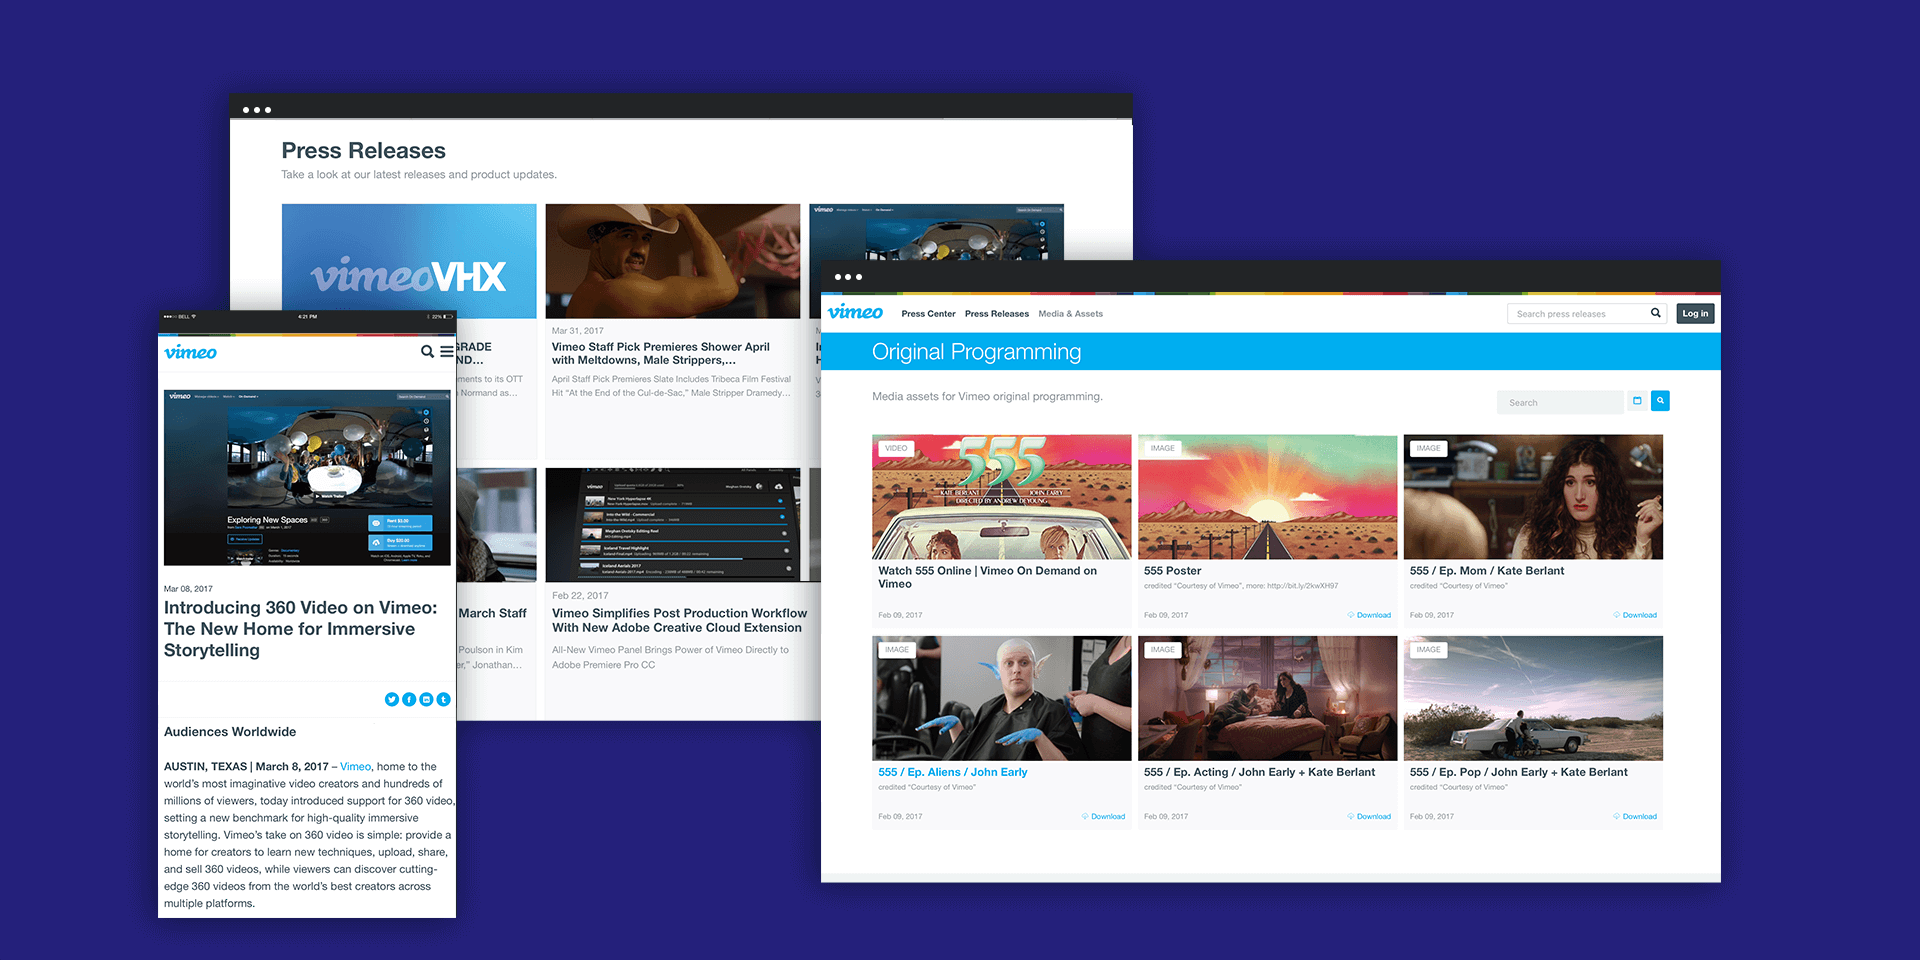 Vimeo Is Making Visual, Interactive Brand Journal for a 'Post-Text' Internet with Prowly App